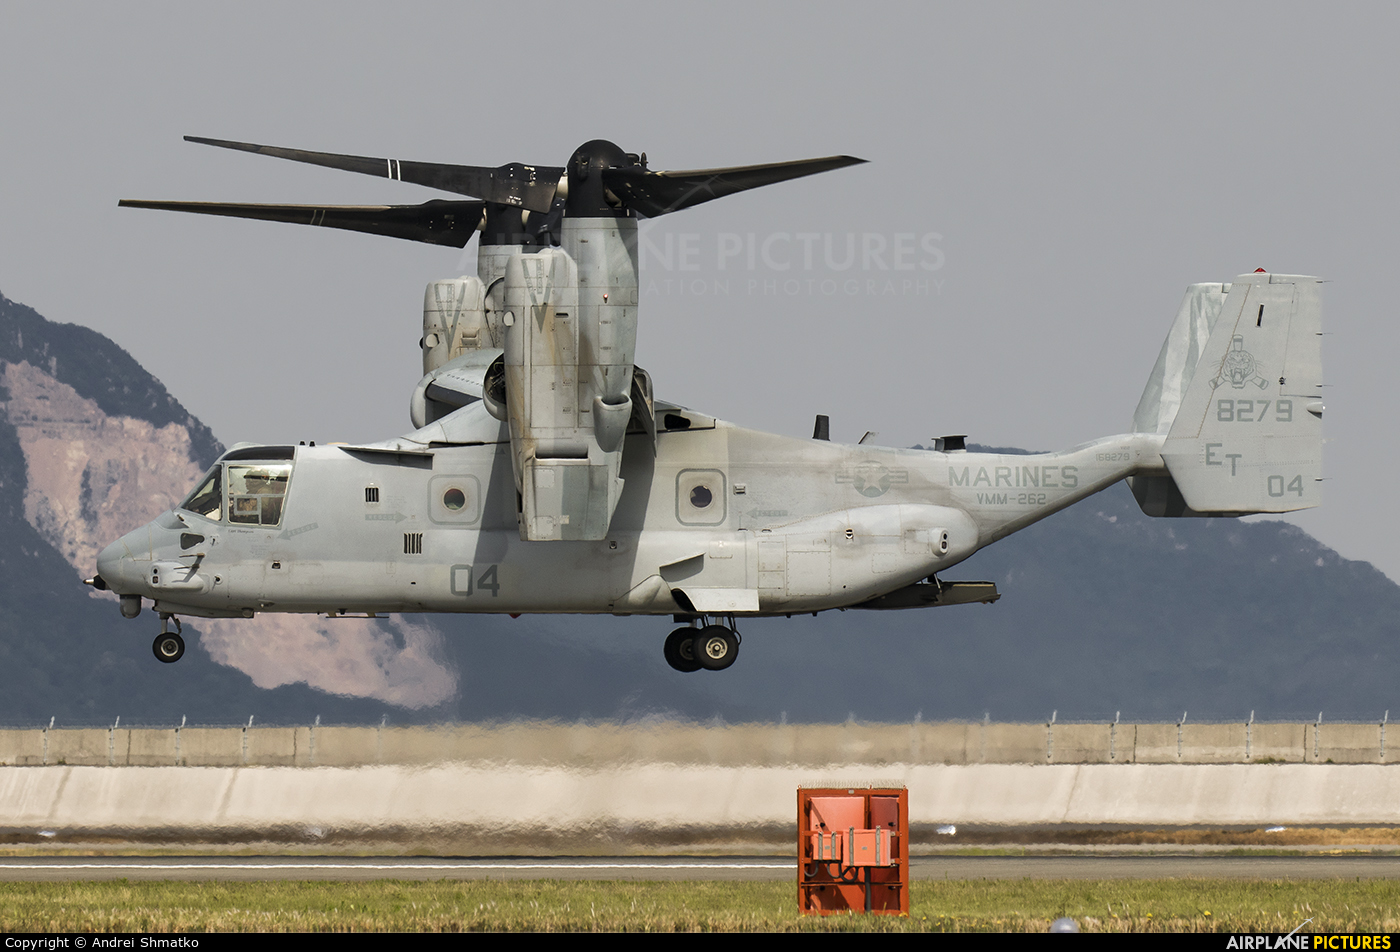 USA - Marine Corps 168279 aircraft at Iwakuni MCAS